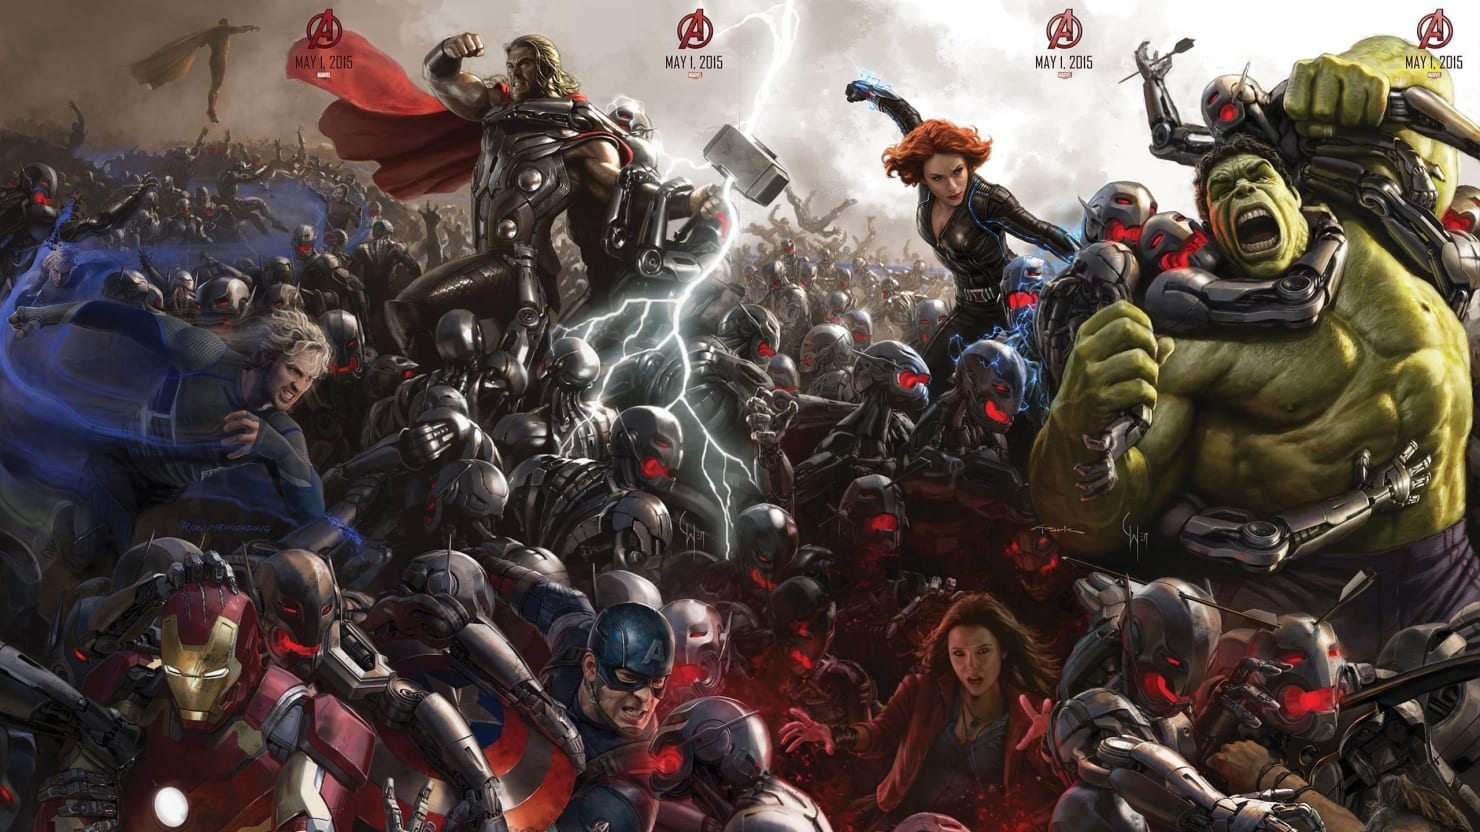 'Avengers: Age of Ultron's' Kickass Trailer Leaks, Features Iron Man's Hulkbuster Armor and Ultron